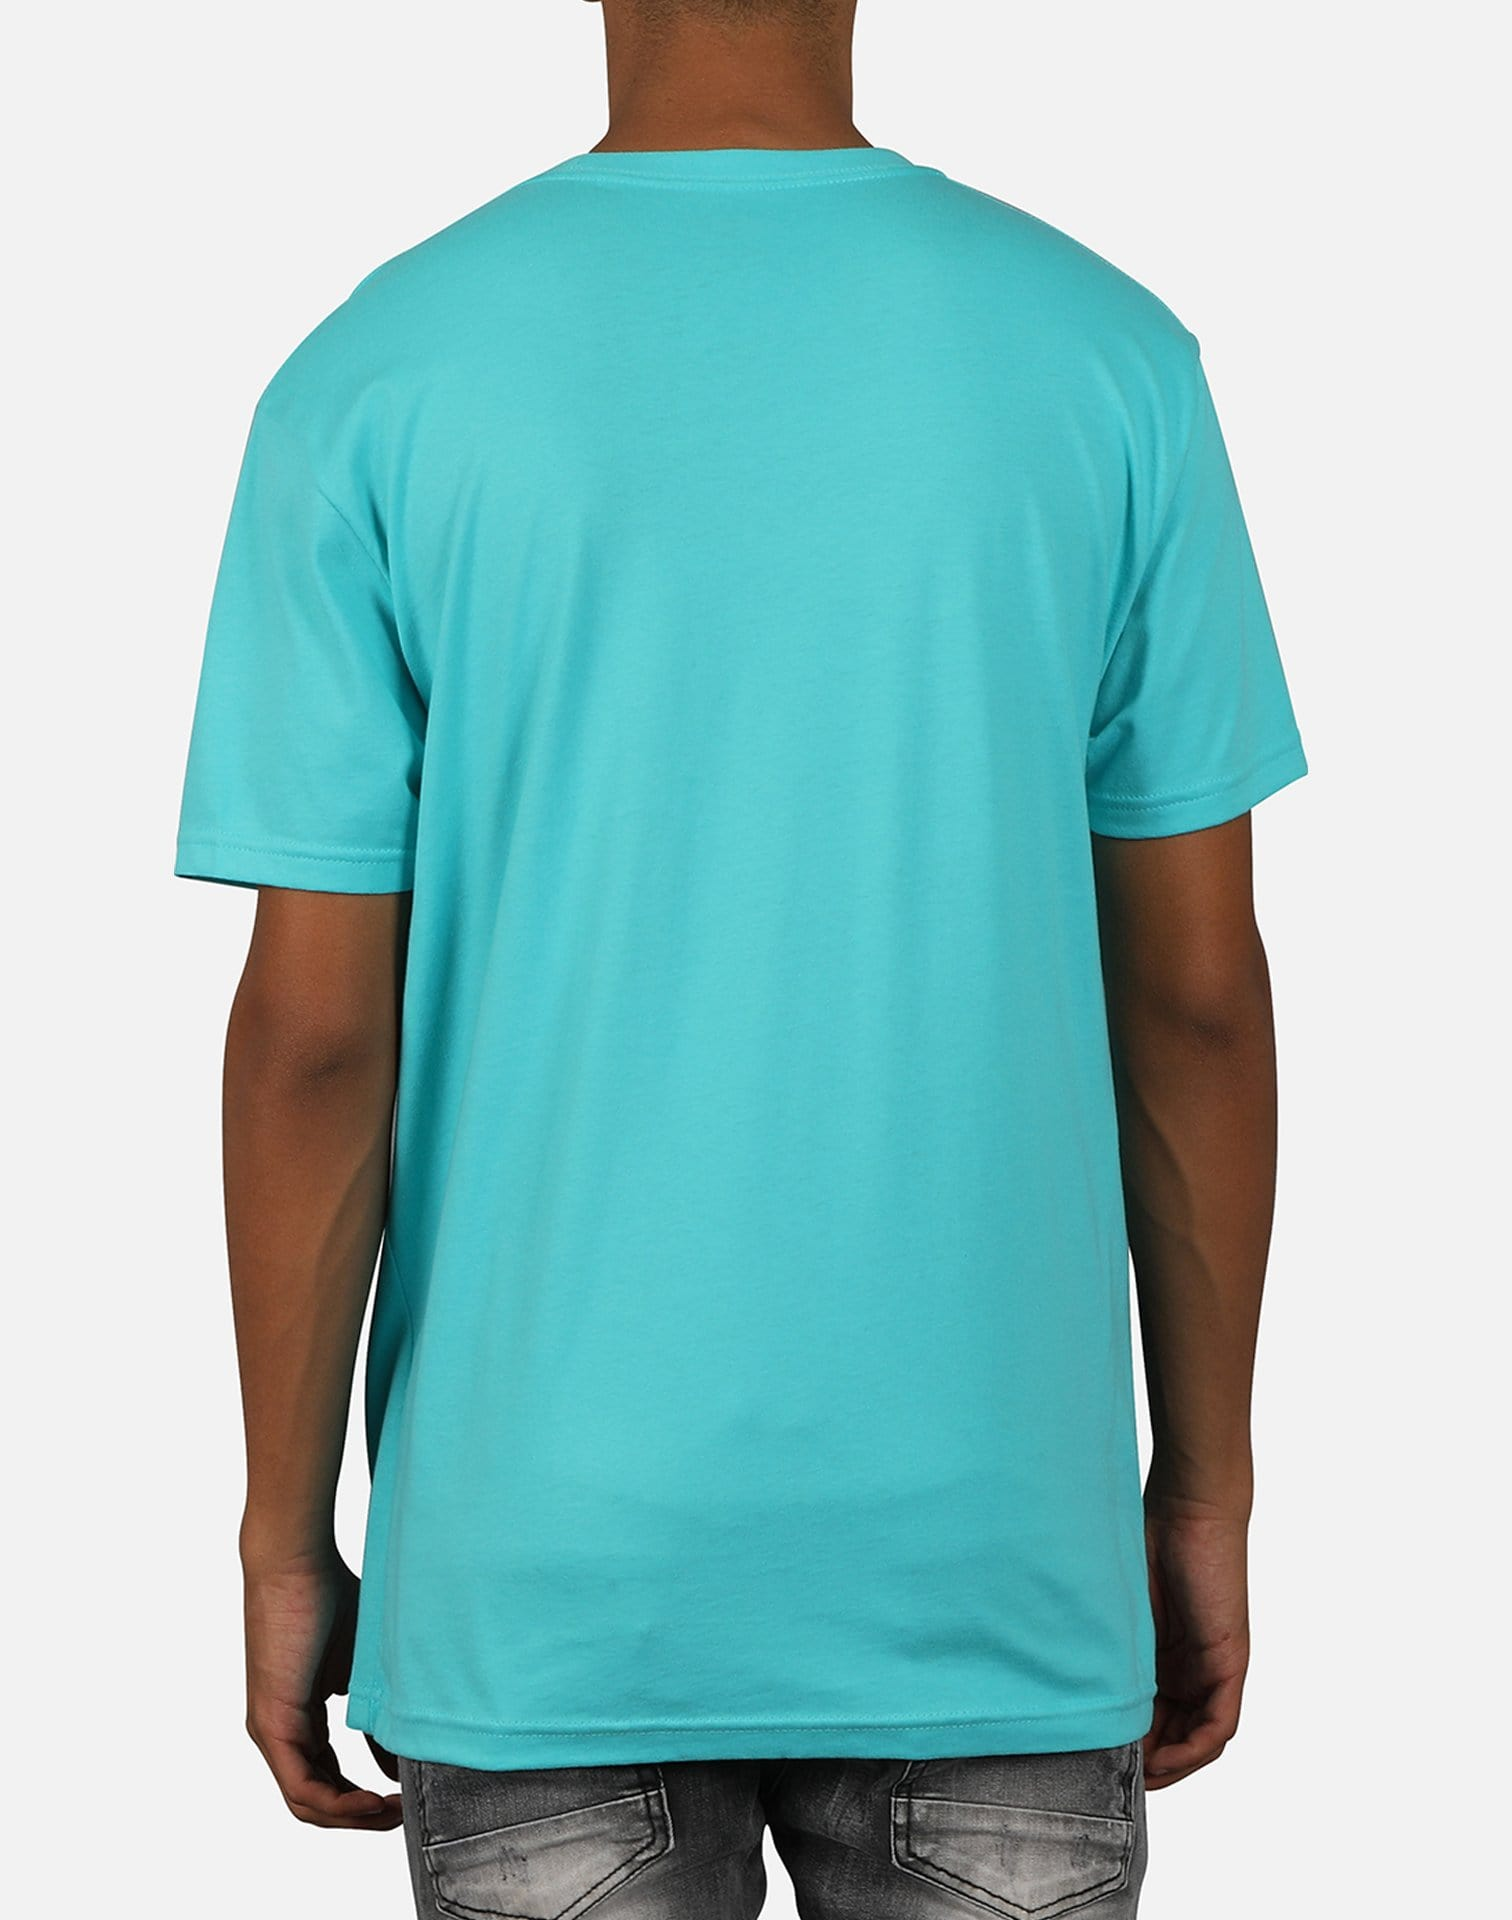 Outrank Men's Rich Center Patch Tee